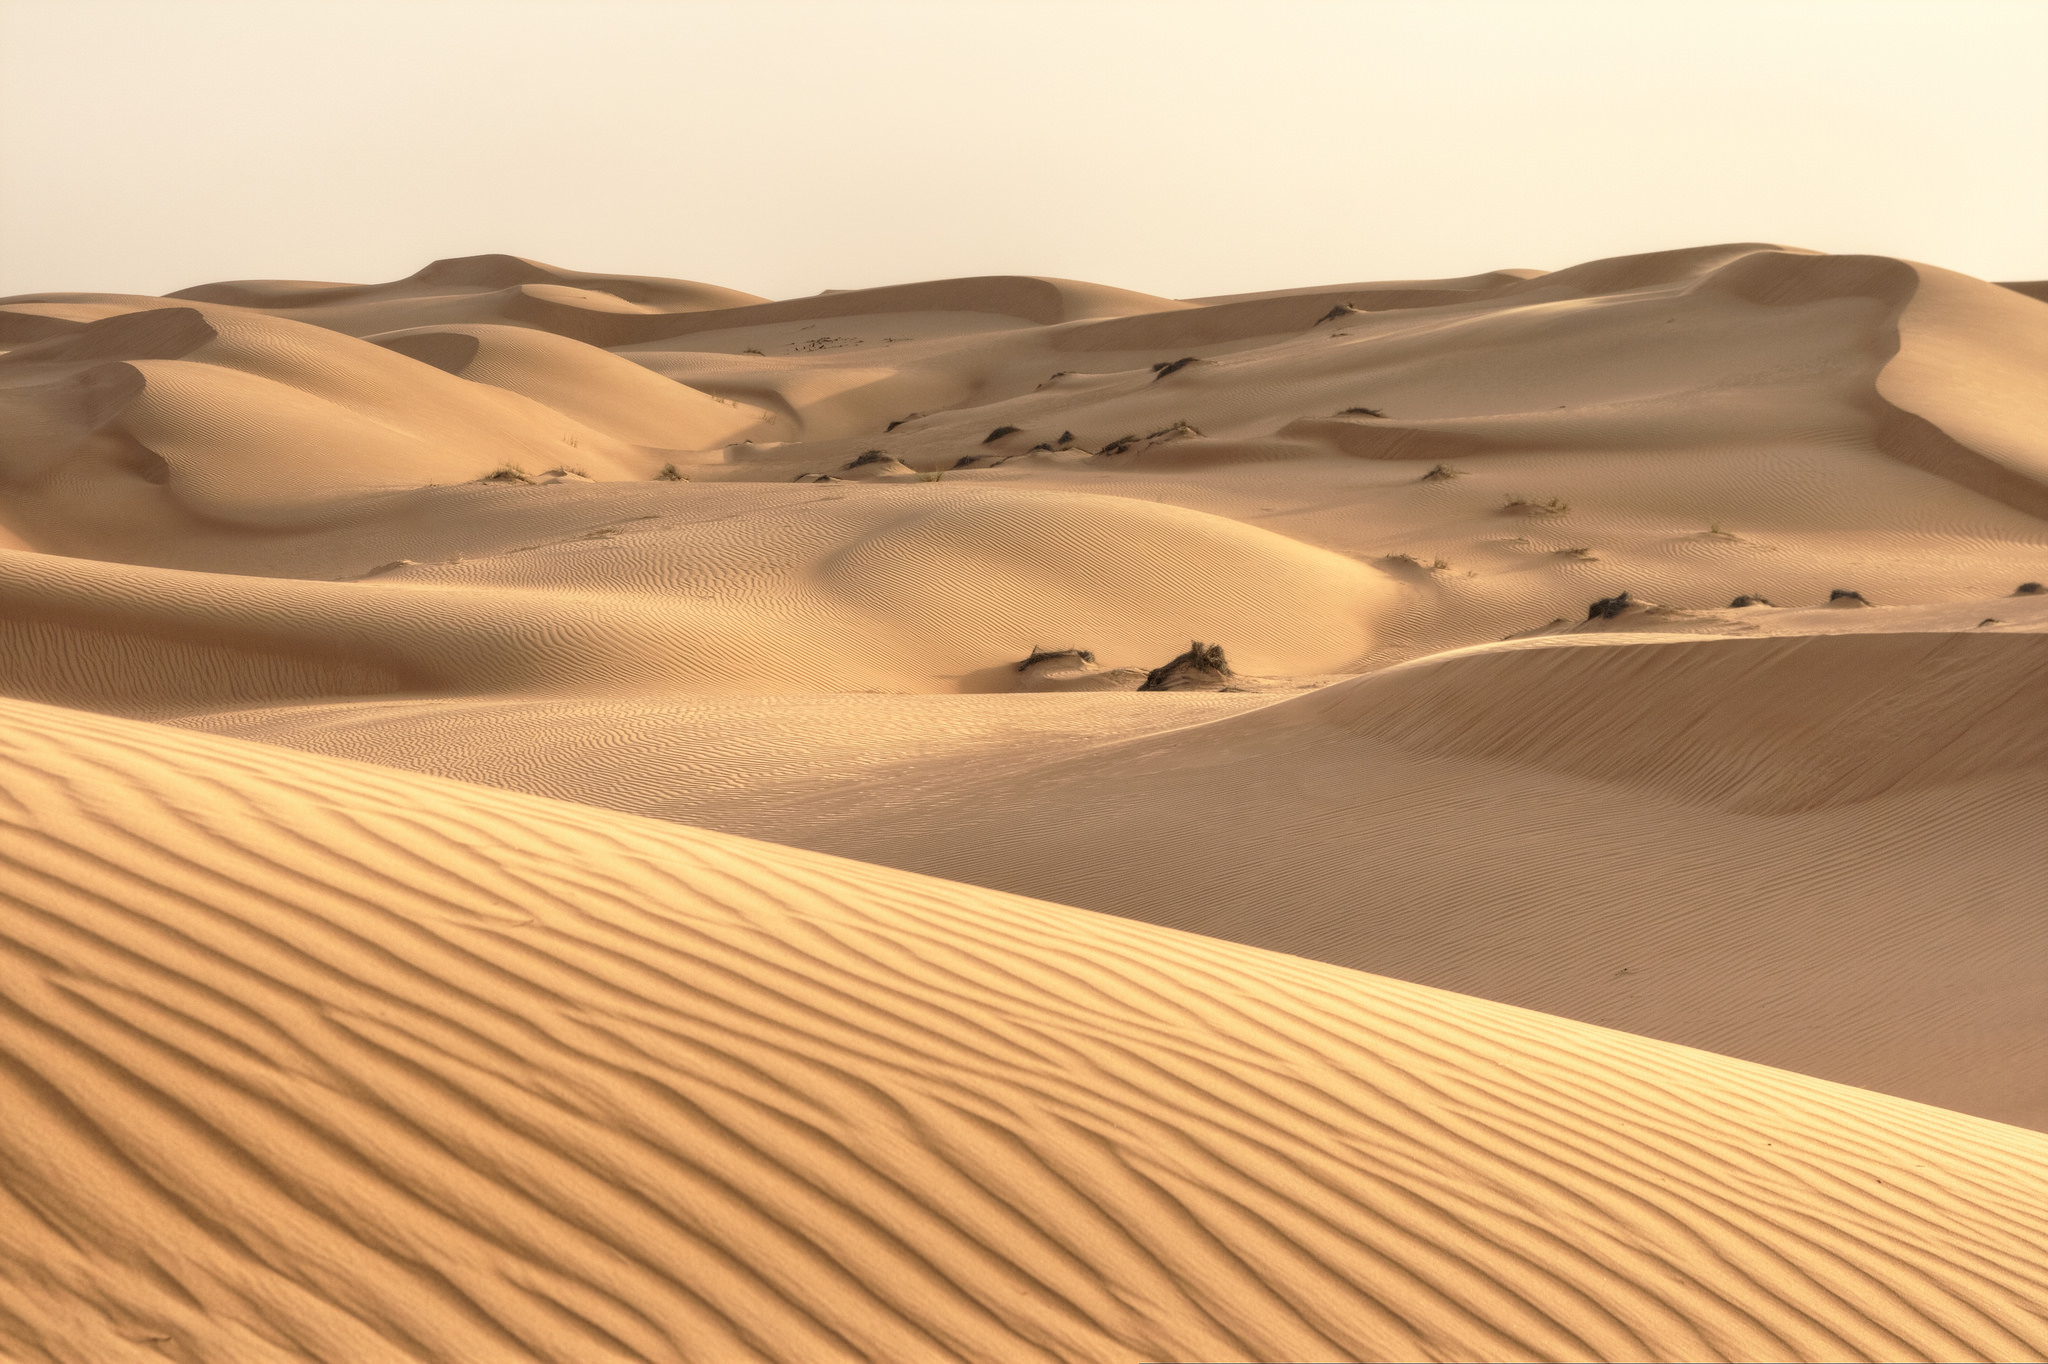 Picture Caption: Oman, Wahiba Sands. Photo by Nicolas Rénac on Flickr.